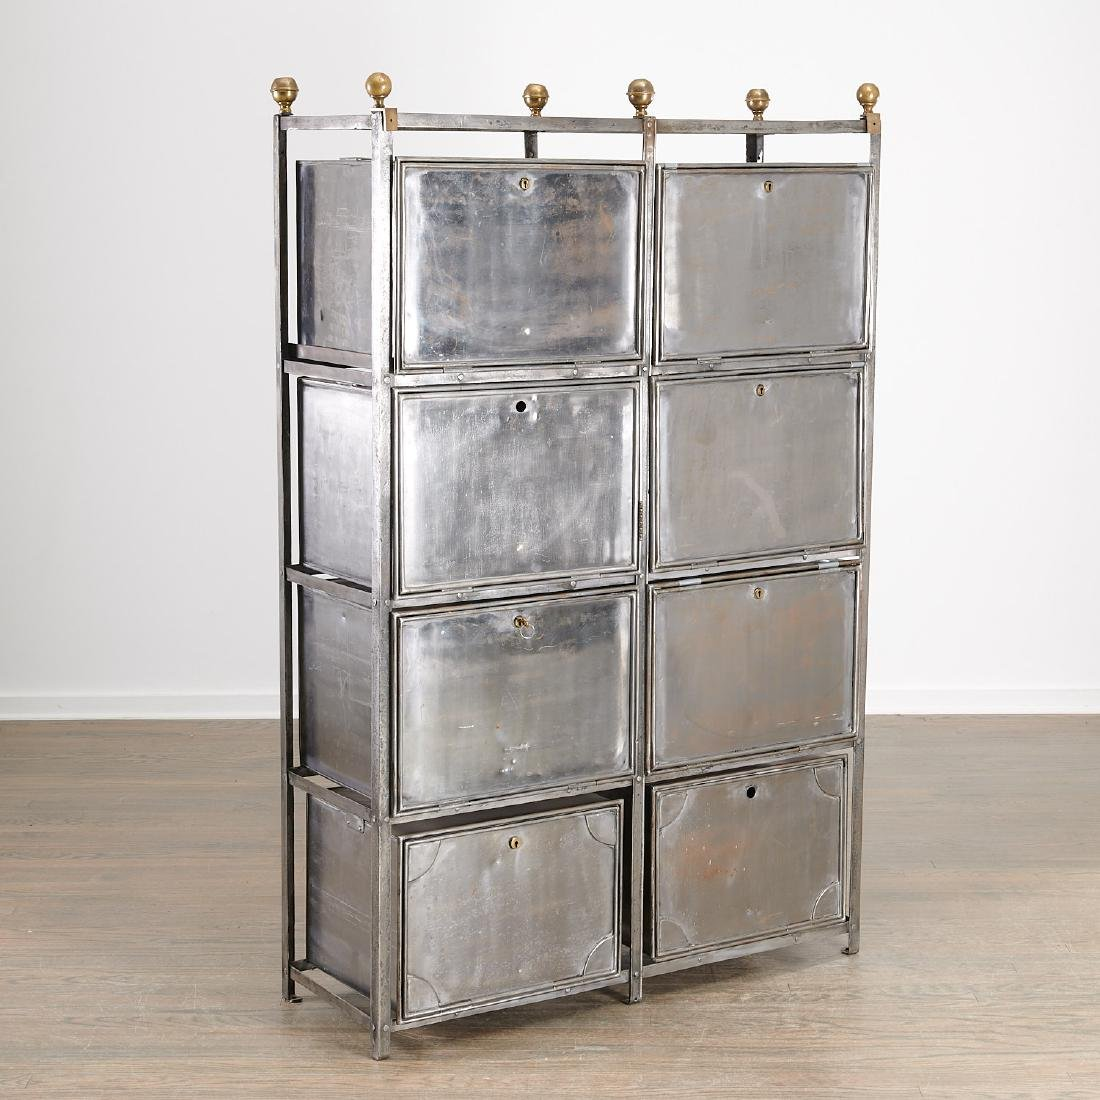 Campaign style steel and brass storage unit